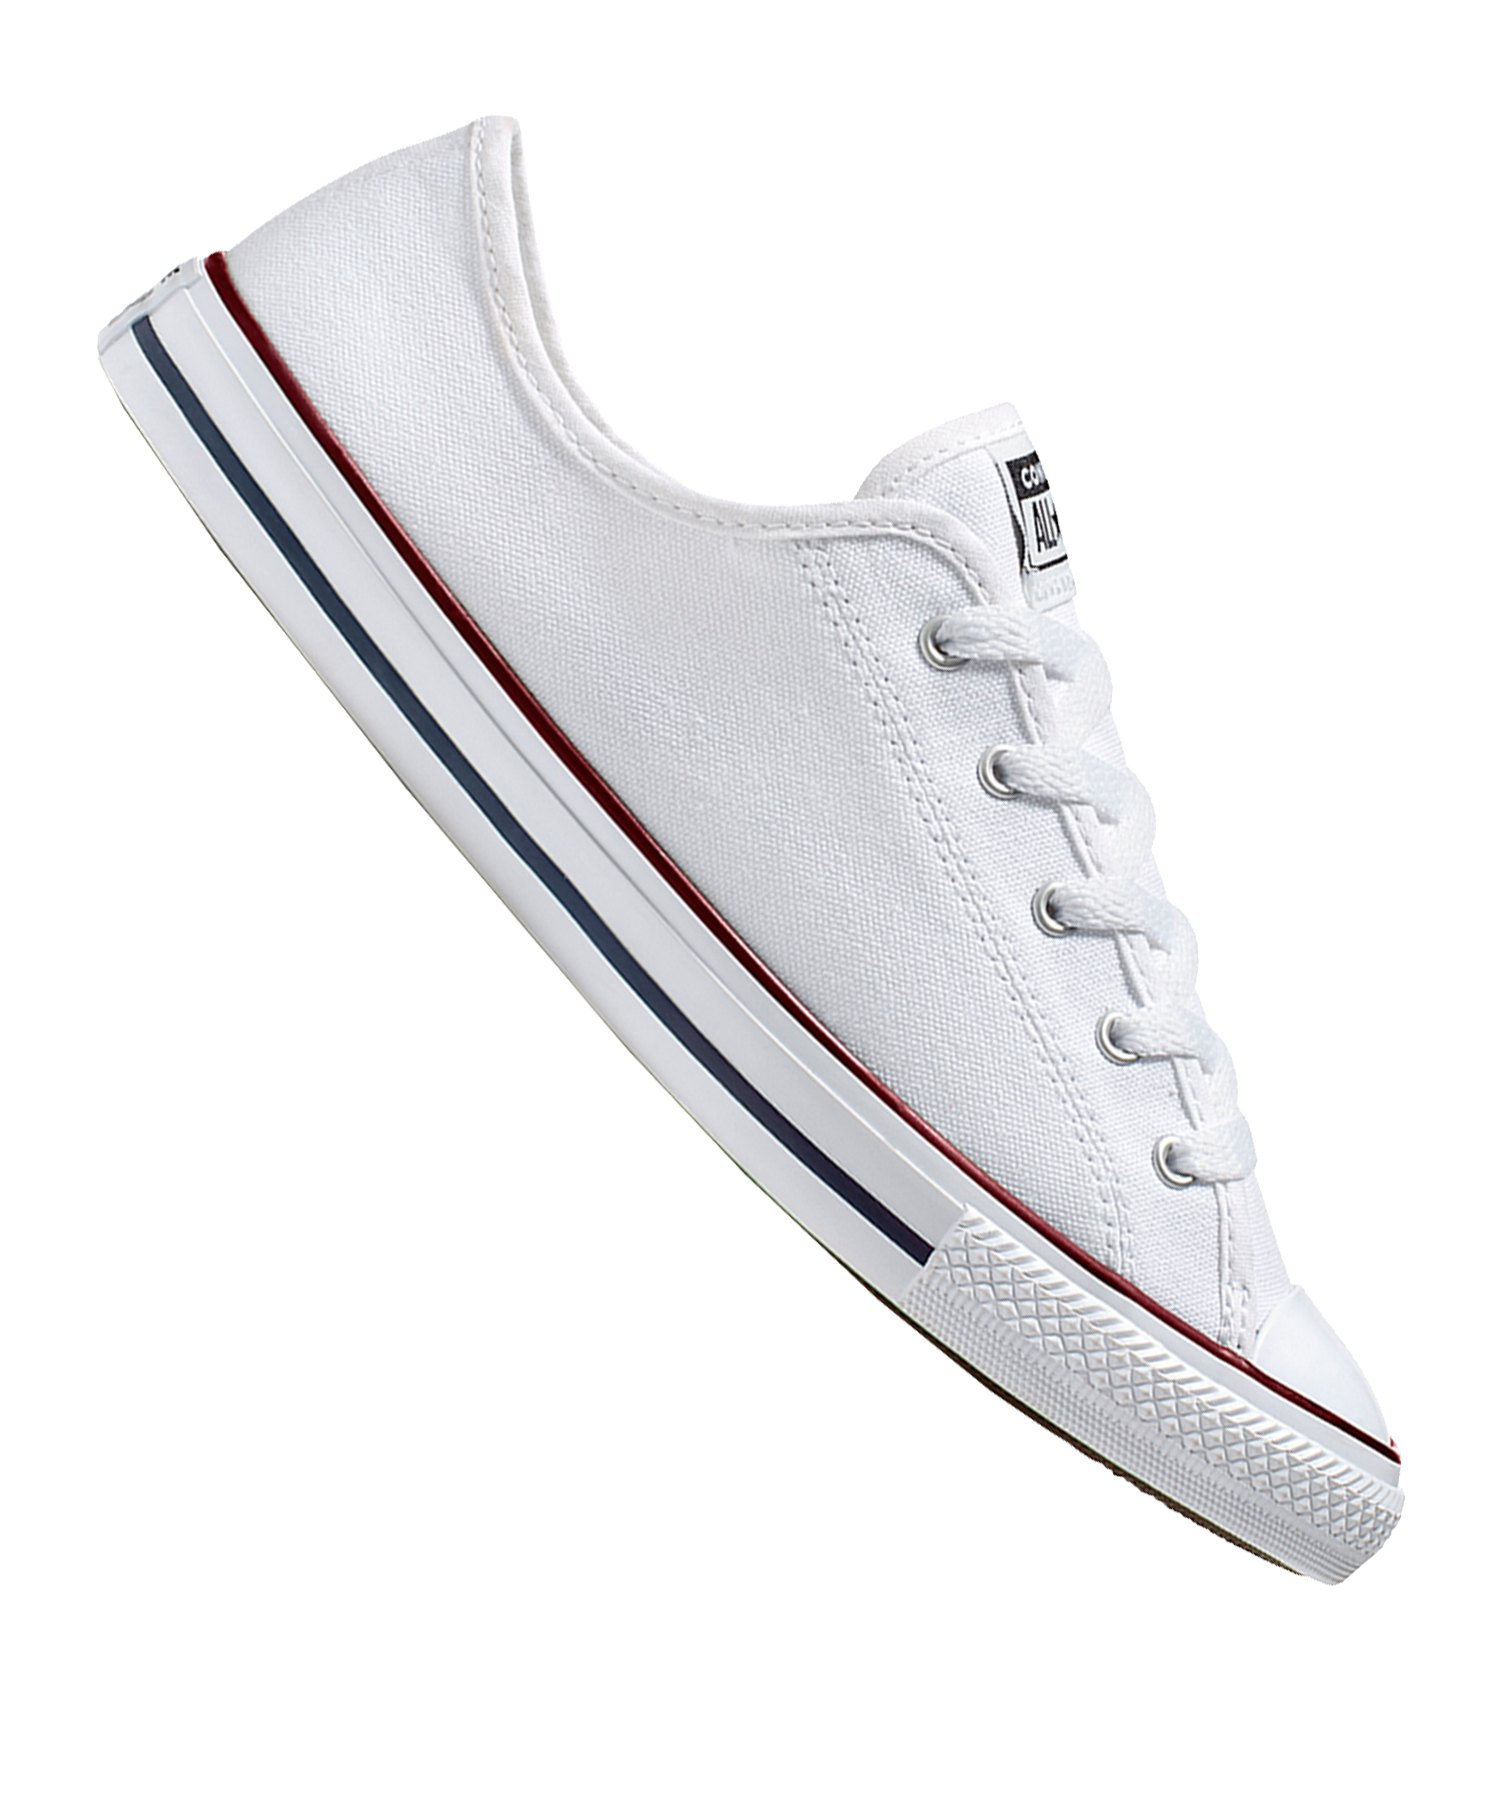 premium selection 1d901 7848f Converse Chuck Taylor AS Dainty OX Damen Weiss